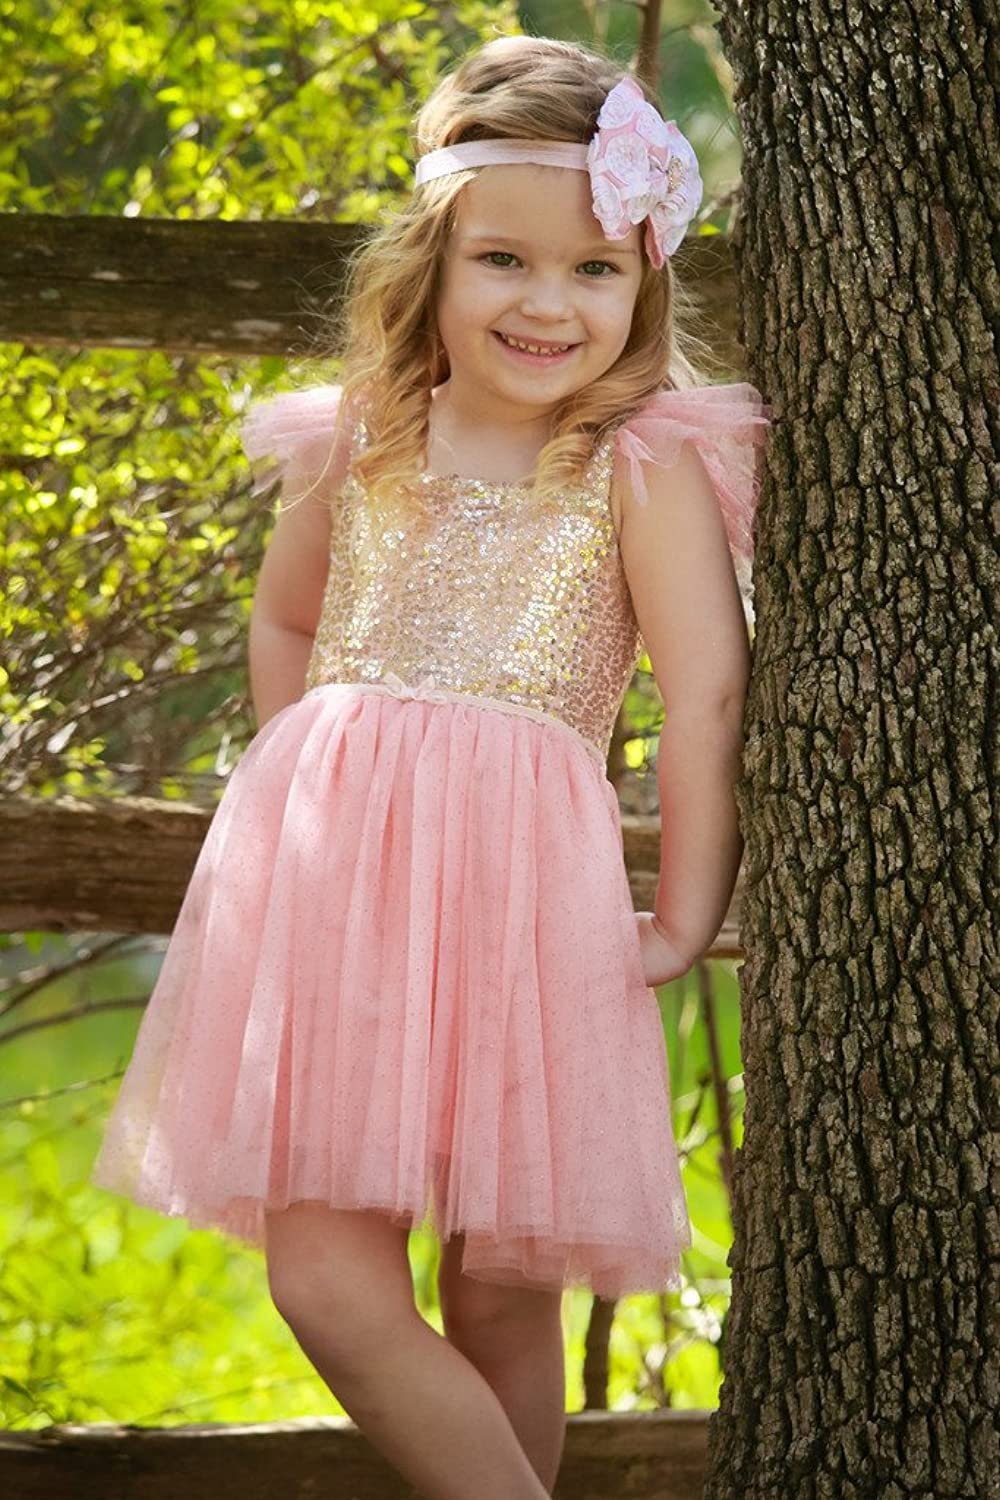 Birthday Dress For Little Girls Princess Ballerina Party Amazonca Toys Games